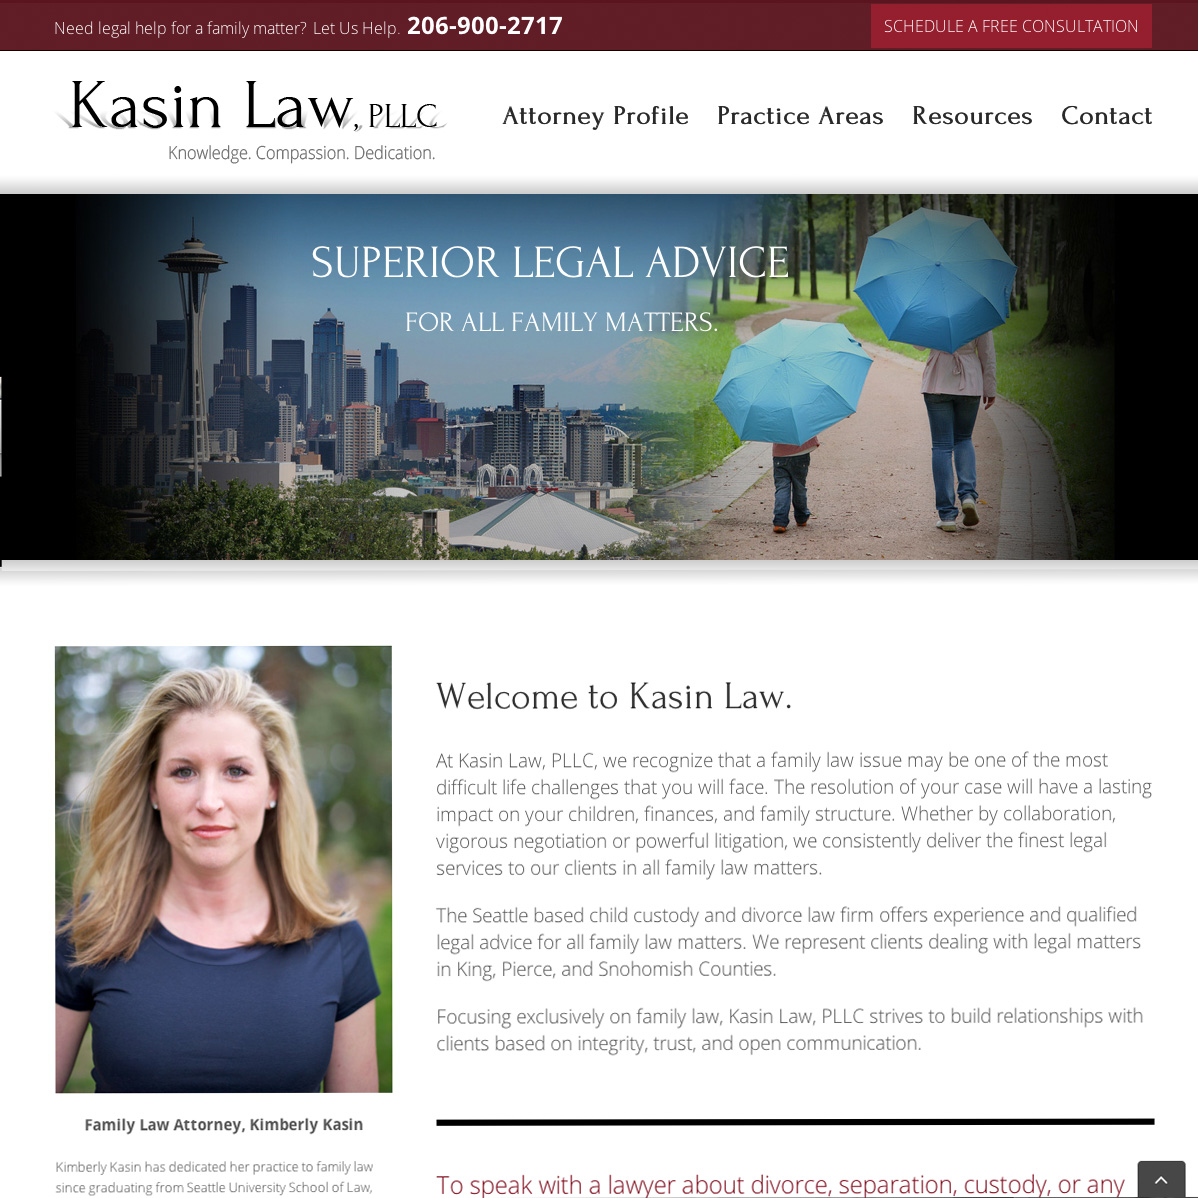 KASIN LAW - ATTORNEY VISIT WEBSITE